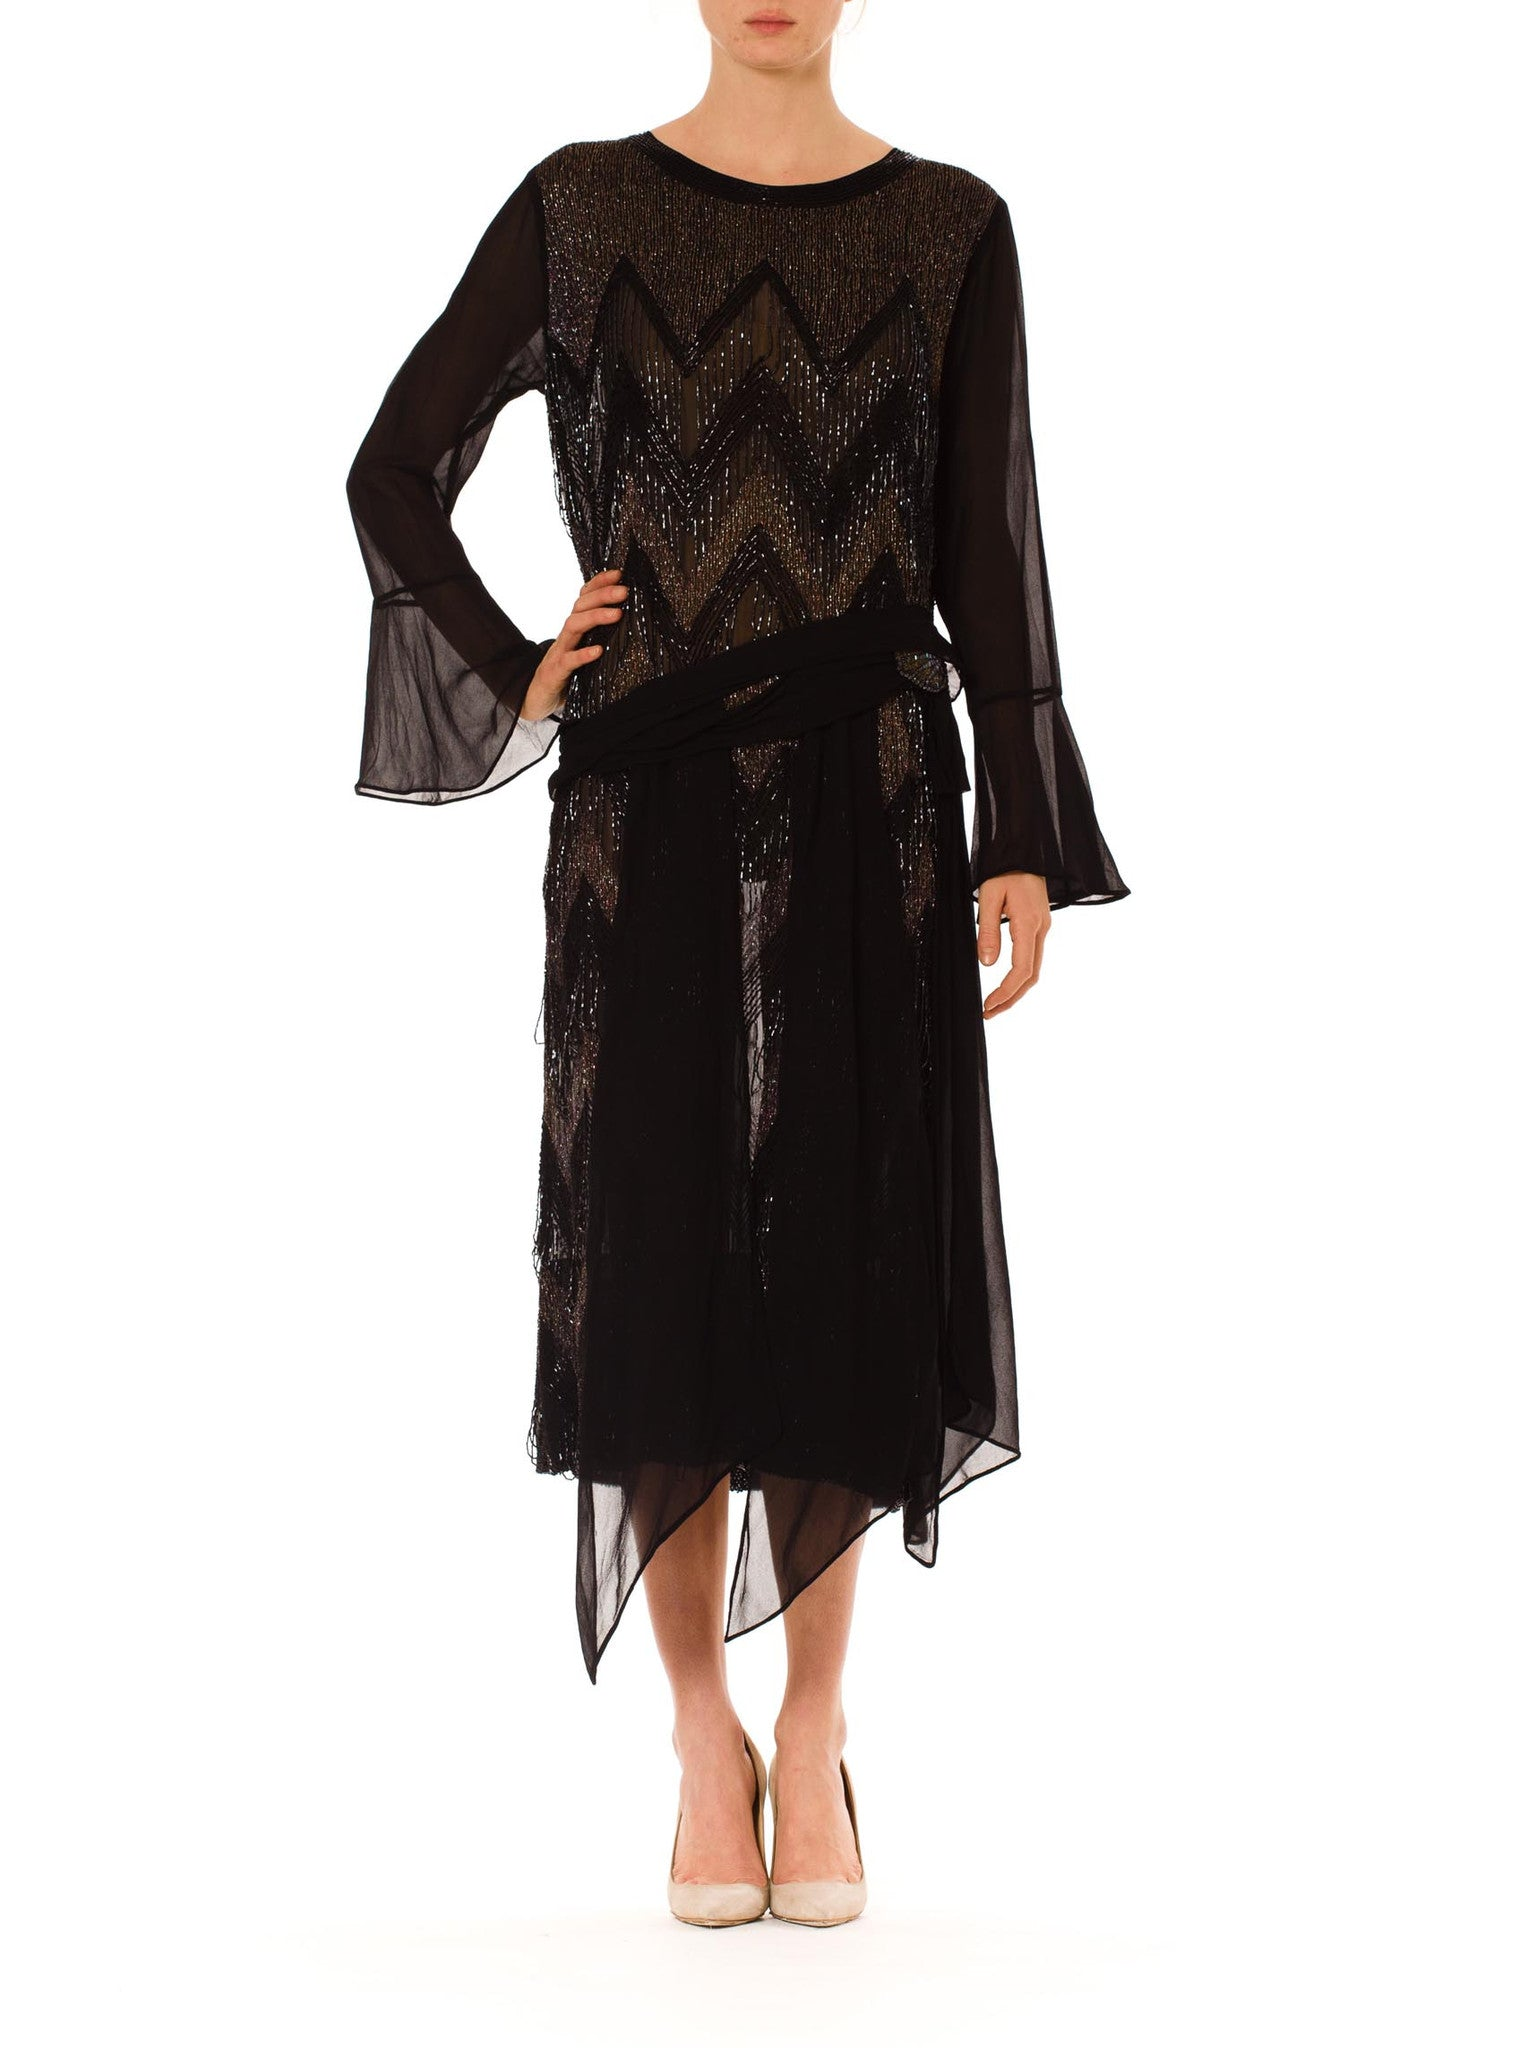 1920S Black Silk Chiffon Bell Sleeve Cocktail Dress With Chevron Metallic Embroidery & Jet Beading